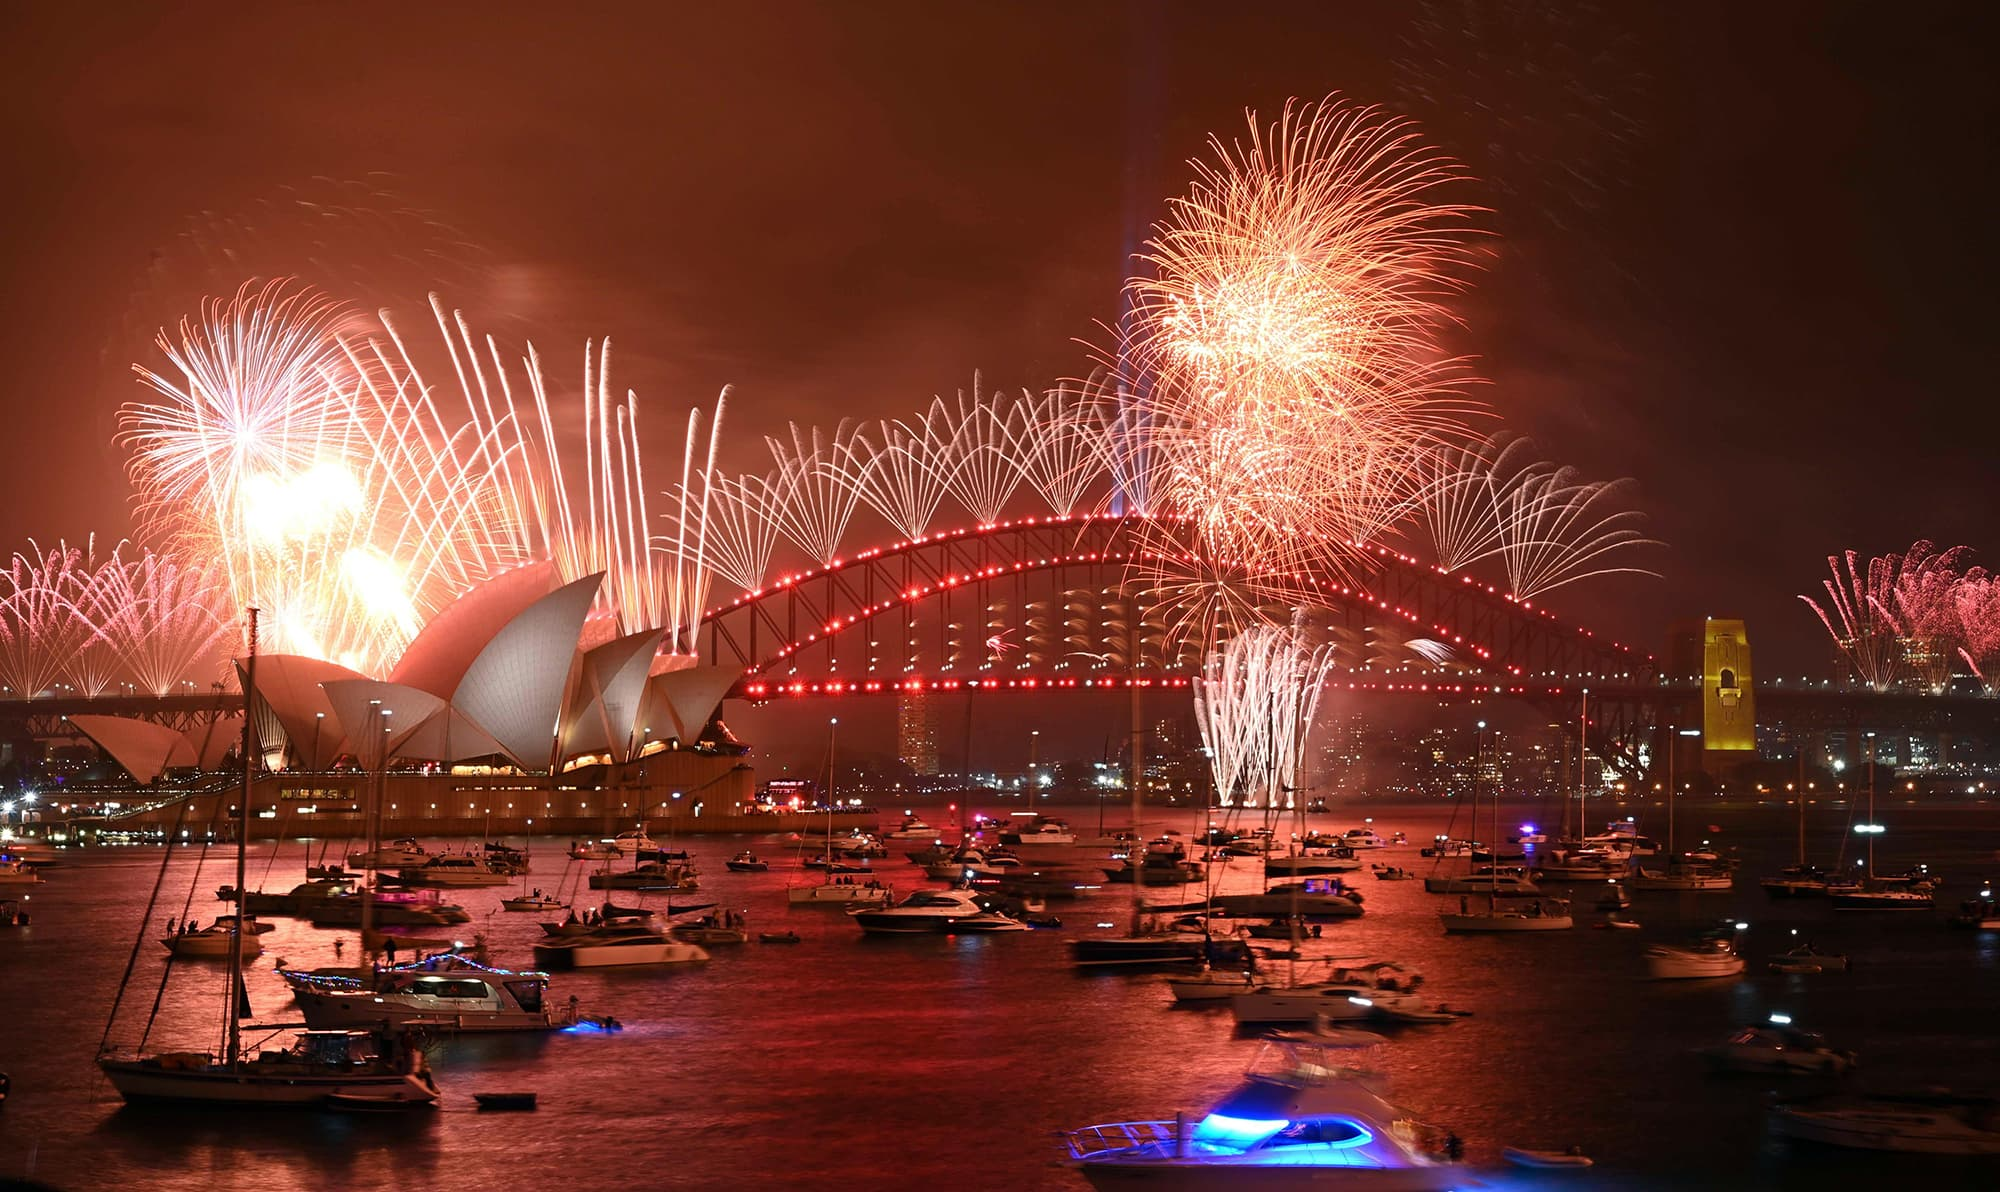 New Year's Eve fireworks erupt over Sydney's iconic Harbour Bridge and Opera House (L) during the fireworks show on January 1, 2020. (Photo by PETER PARKS / AFP) — AFP or licensors